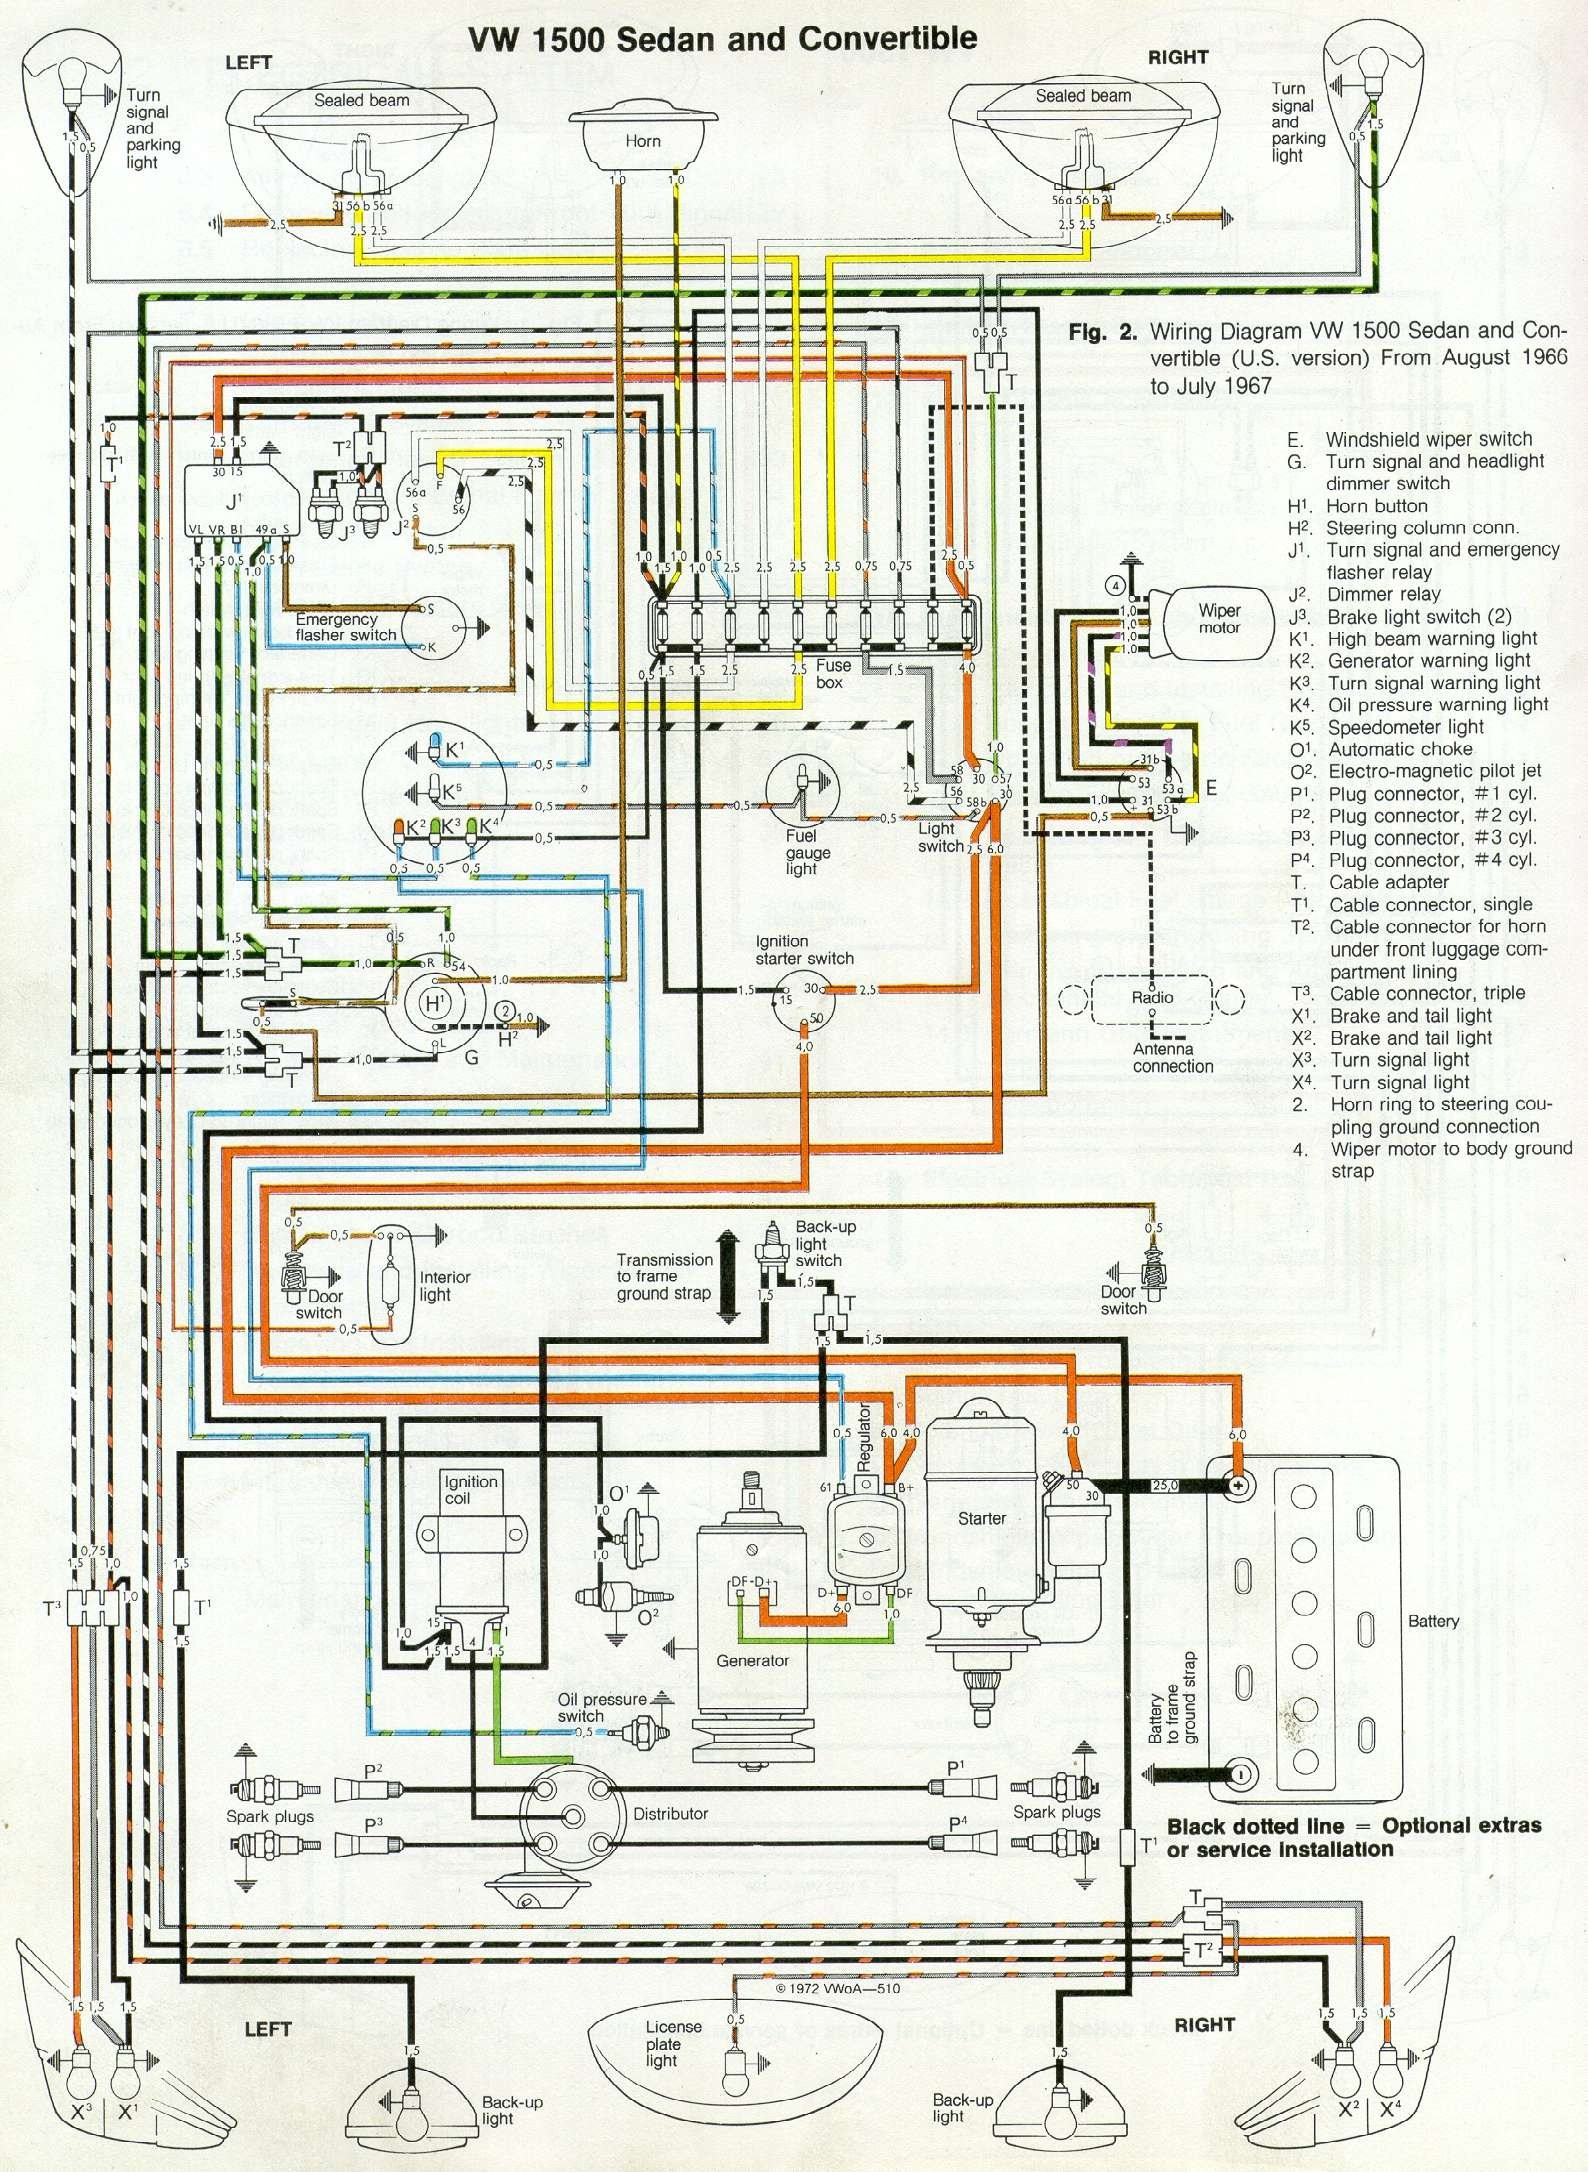 67 beetle wiring diagram u s version 1967 vw beetle rh 1967beetle com vw beetle wiring diagram vw beetle diagram 2012